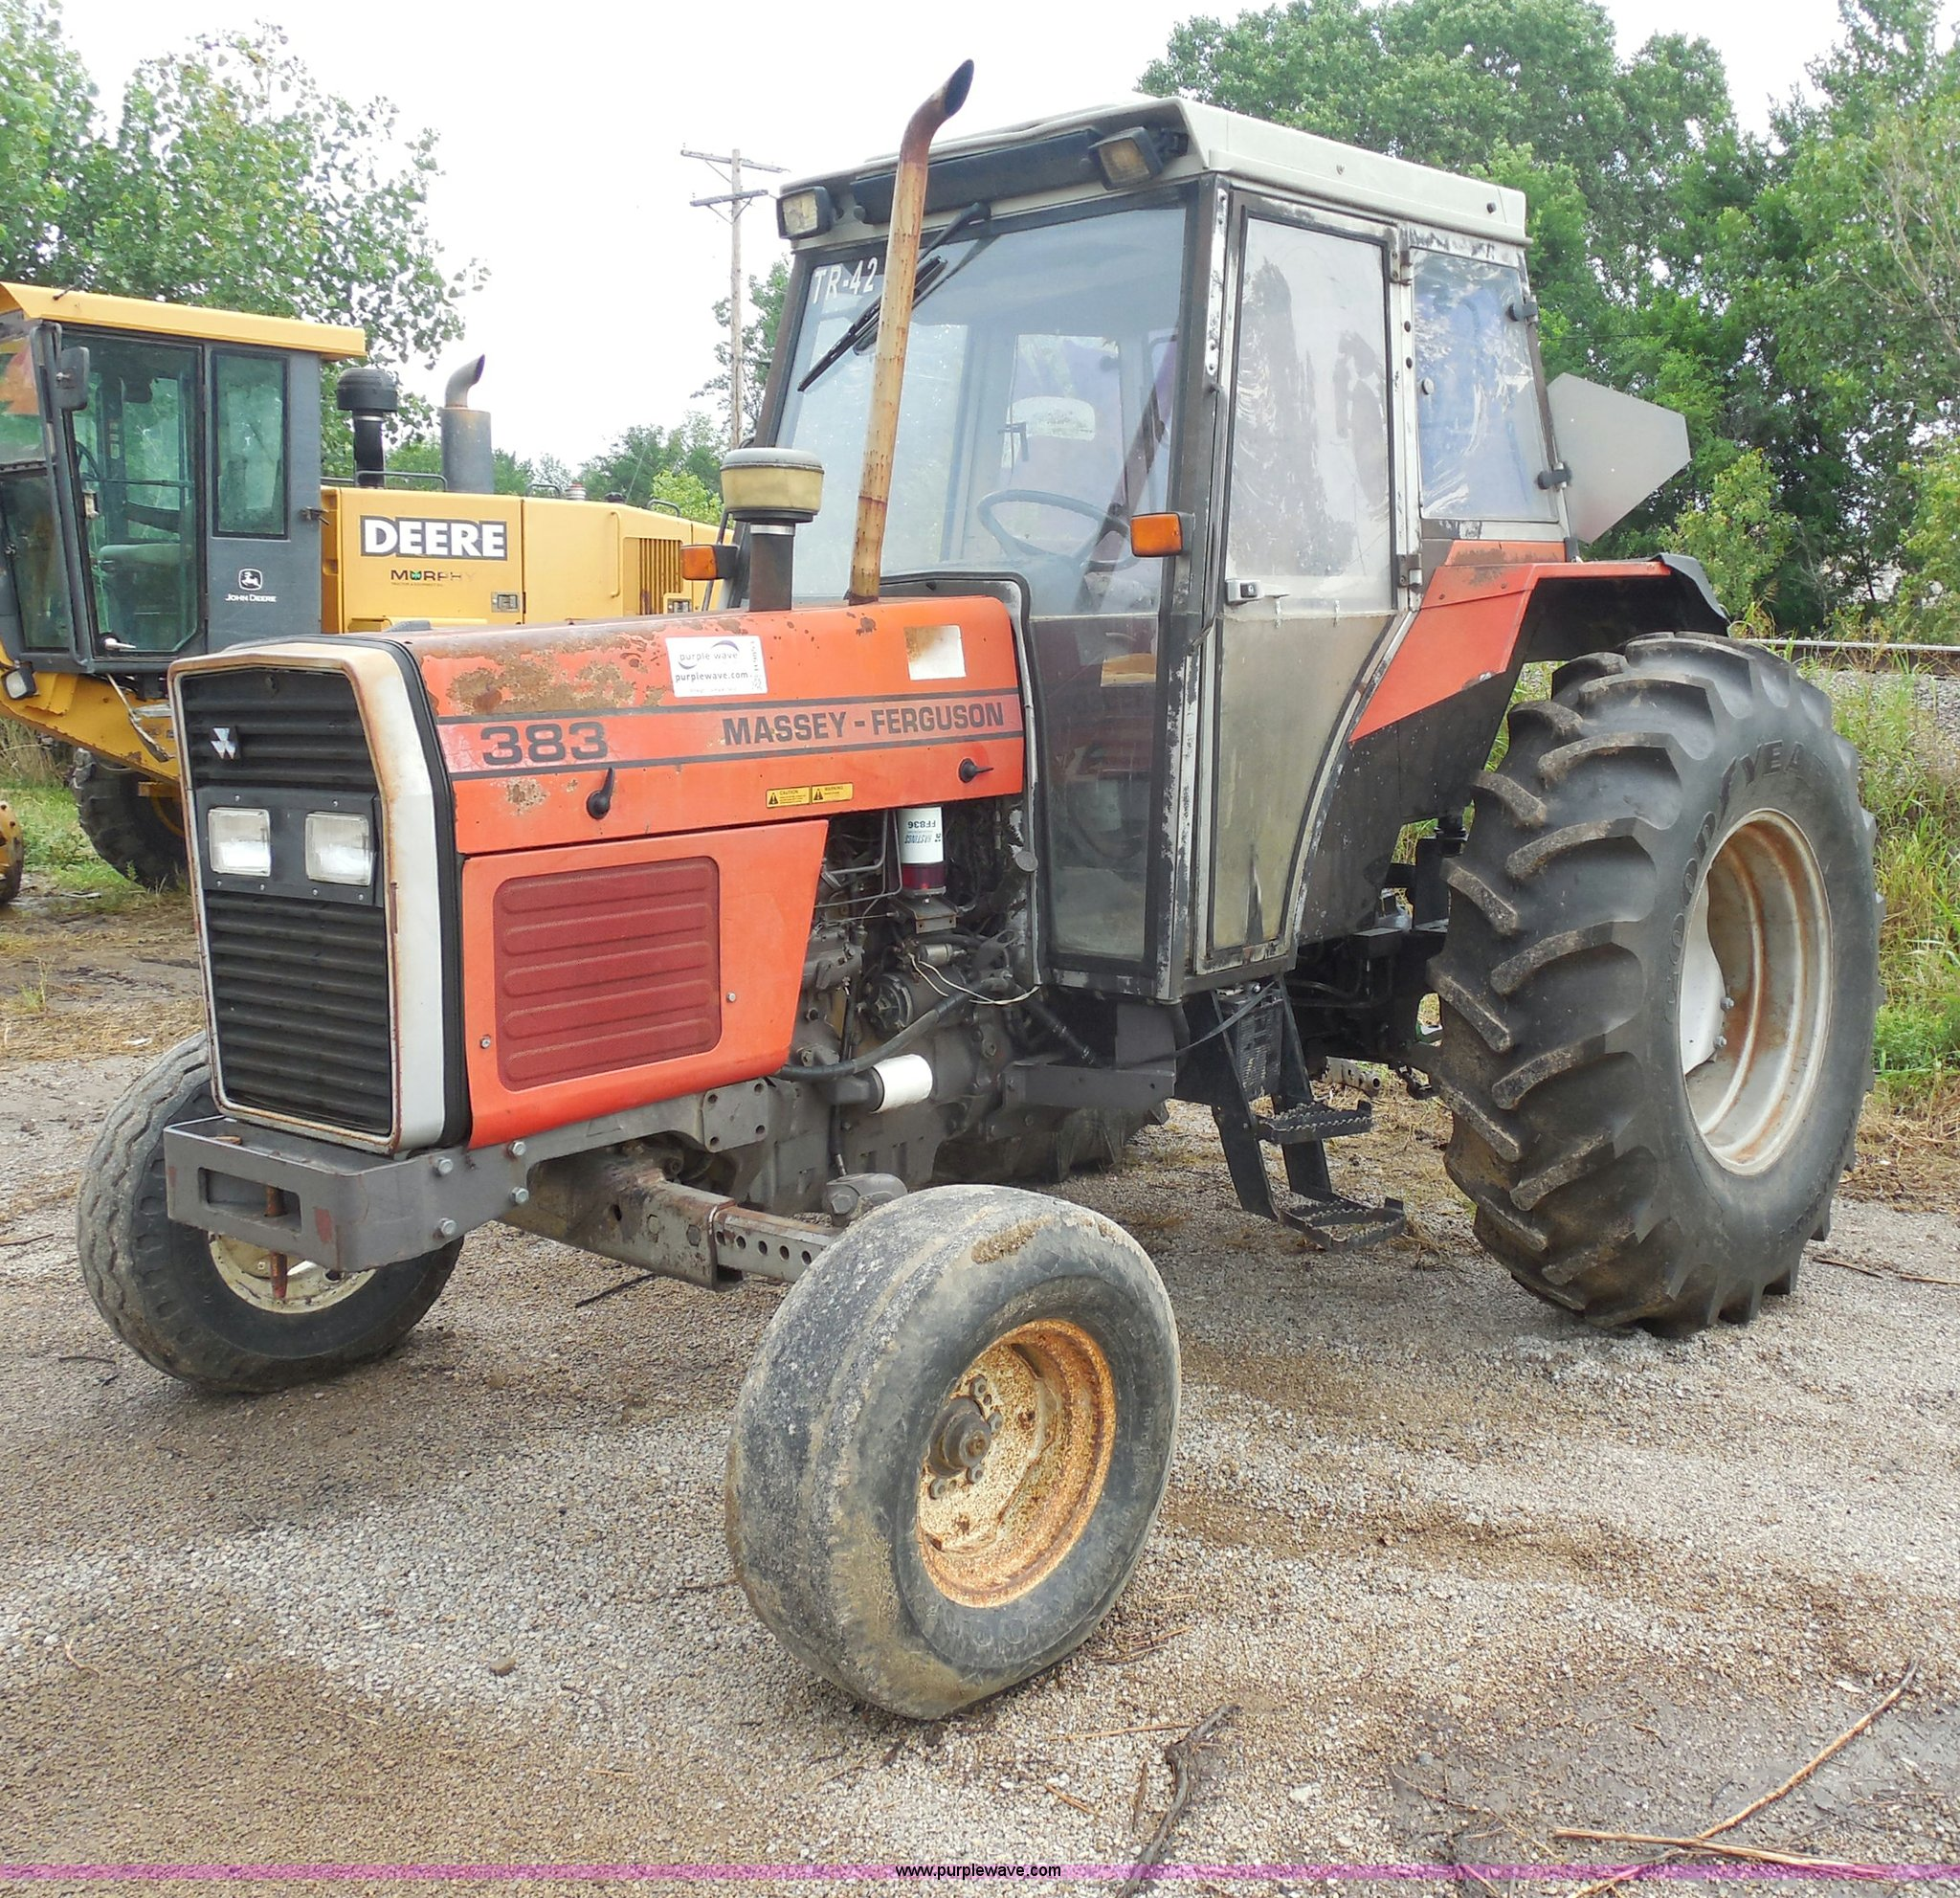 Massey-Ferguson 383 tractor | Item H9853 | SOLD! September 1